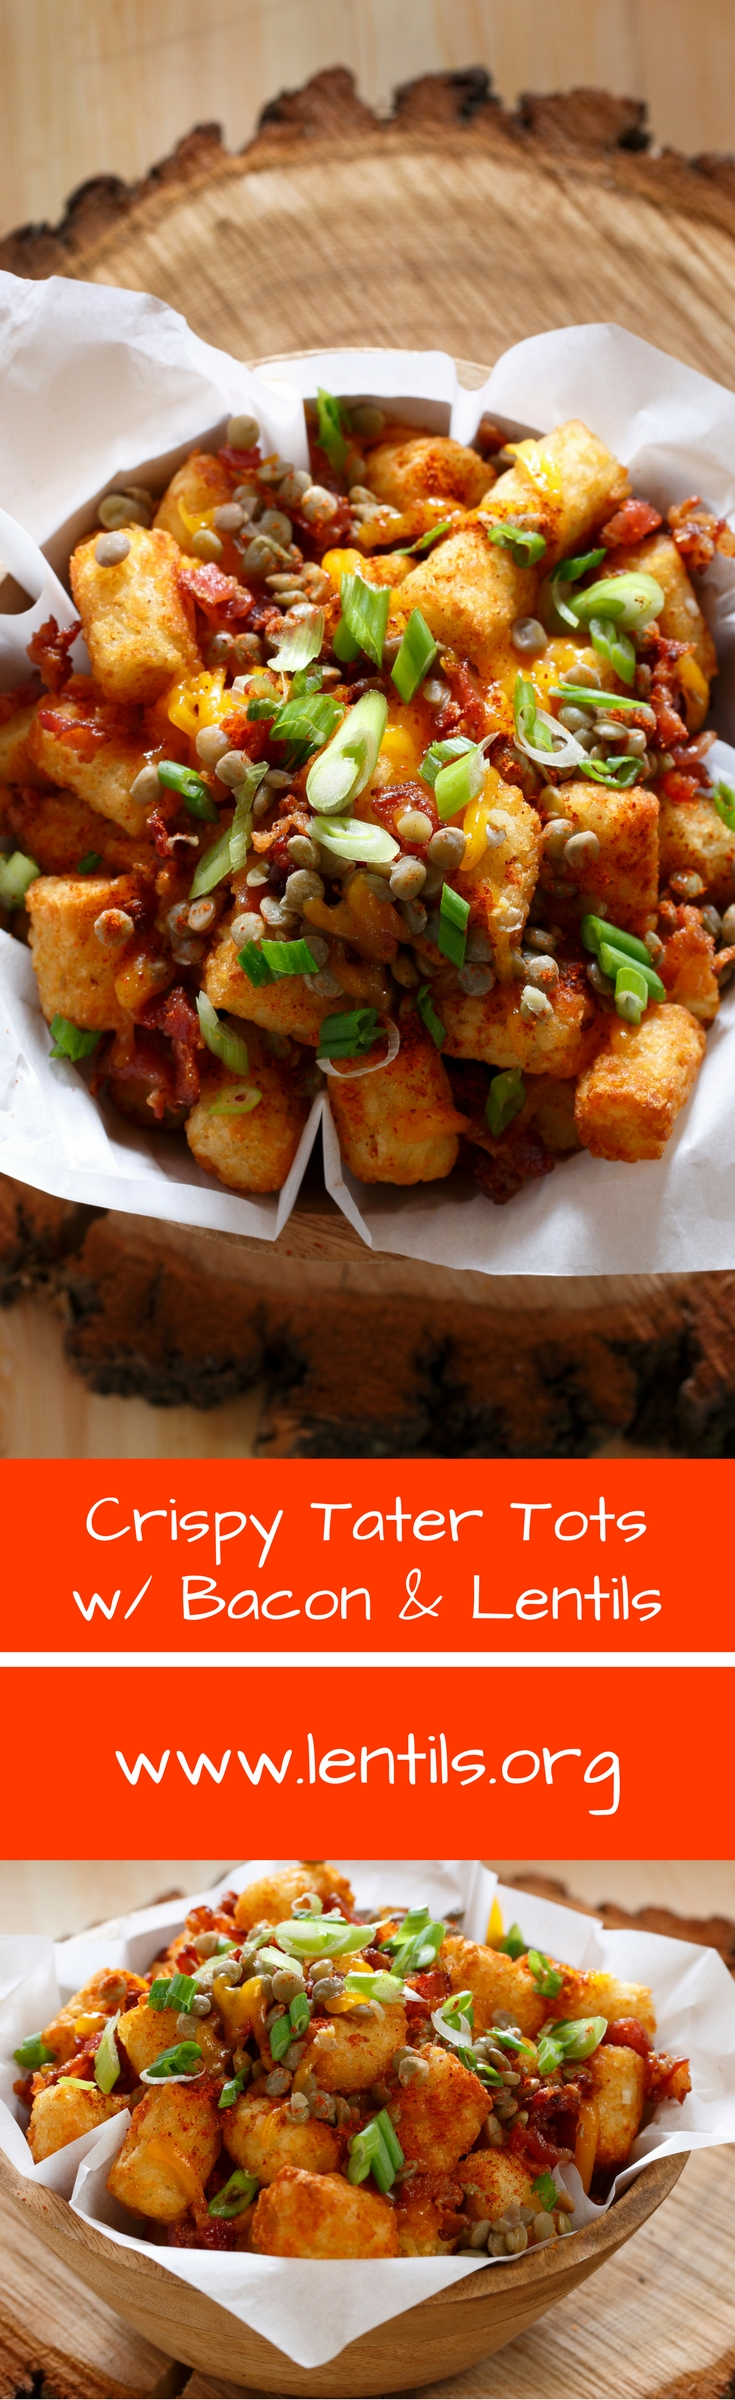 crispy tater tots with lentils  bacon  recipe